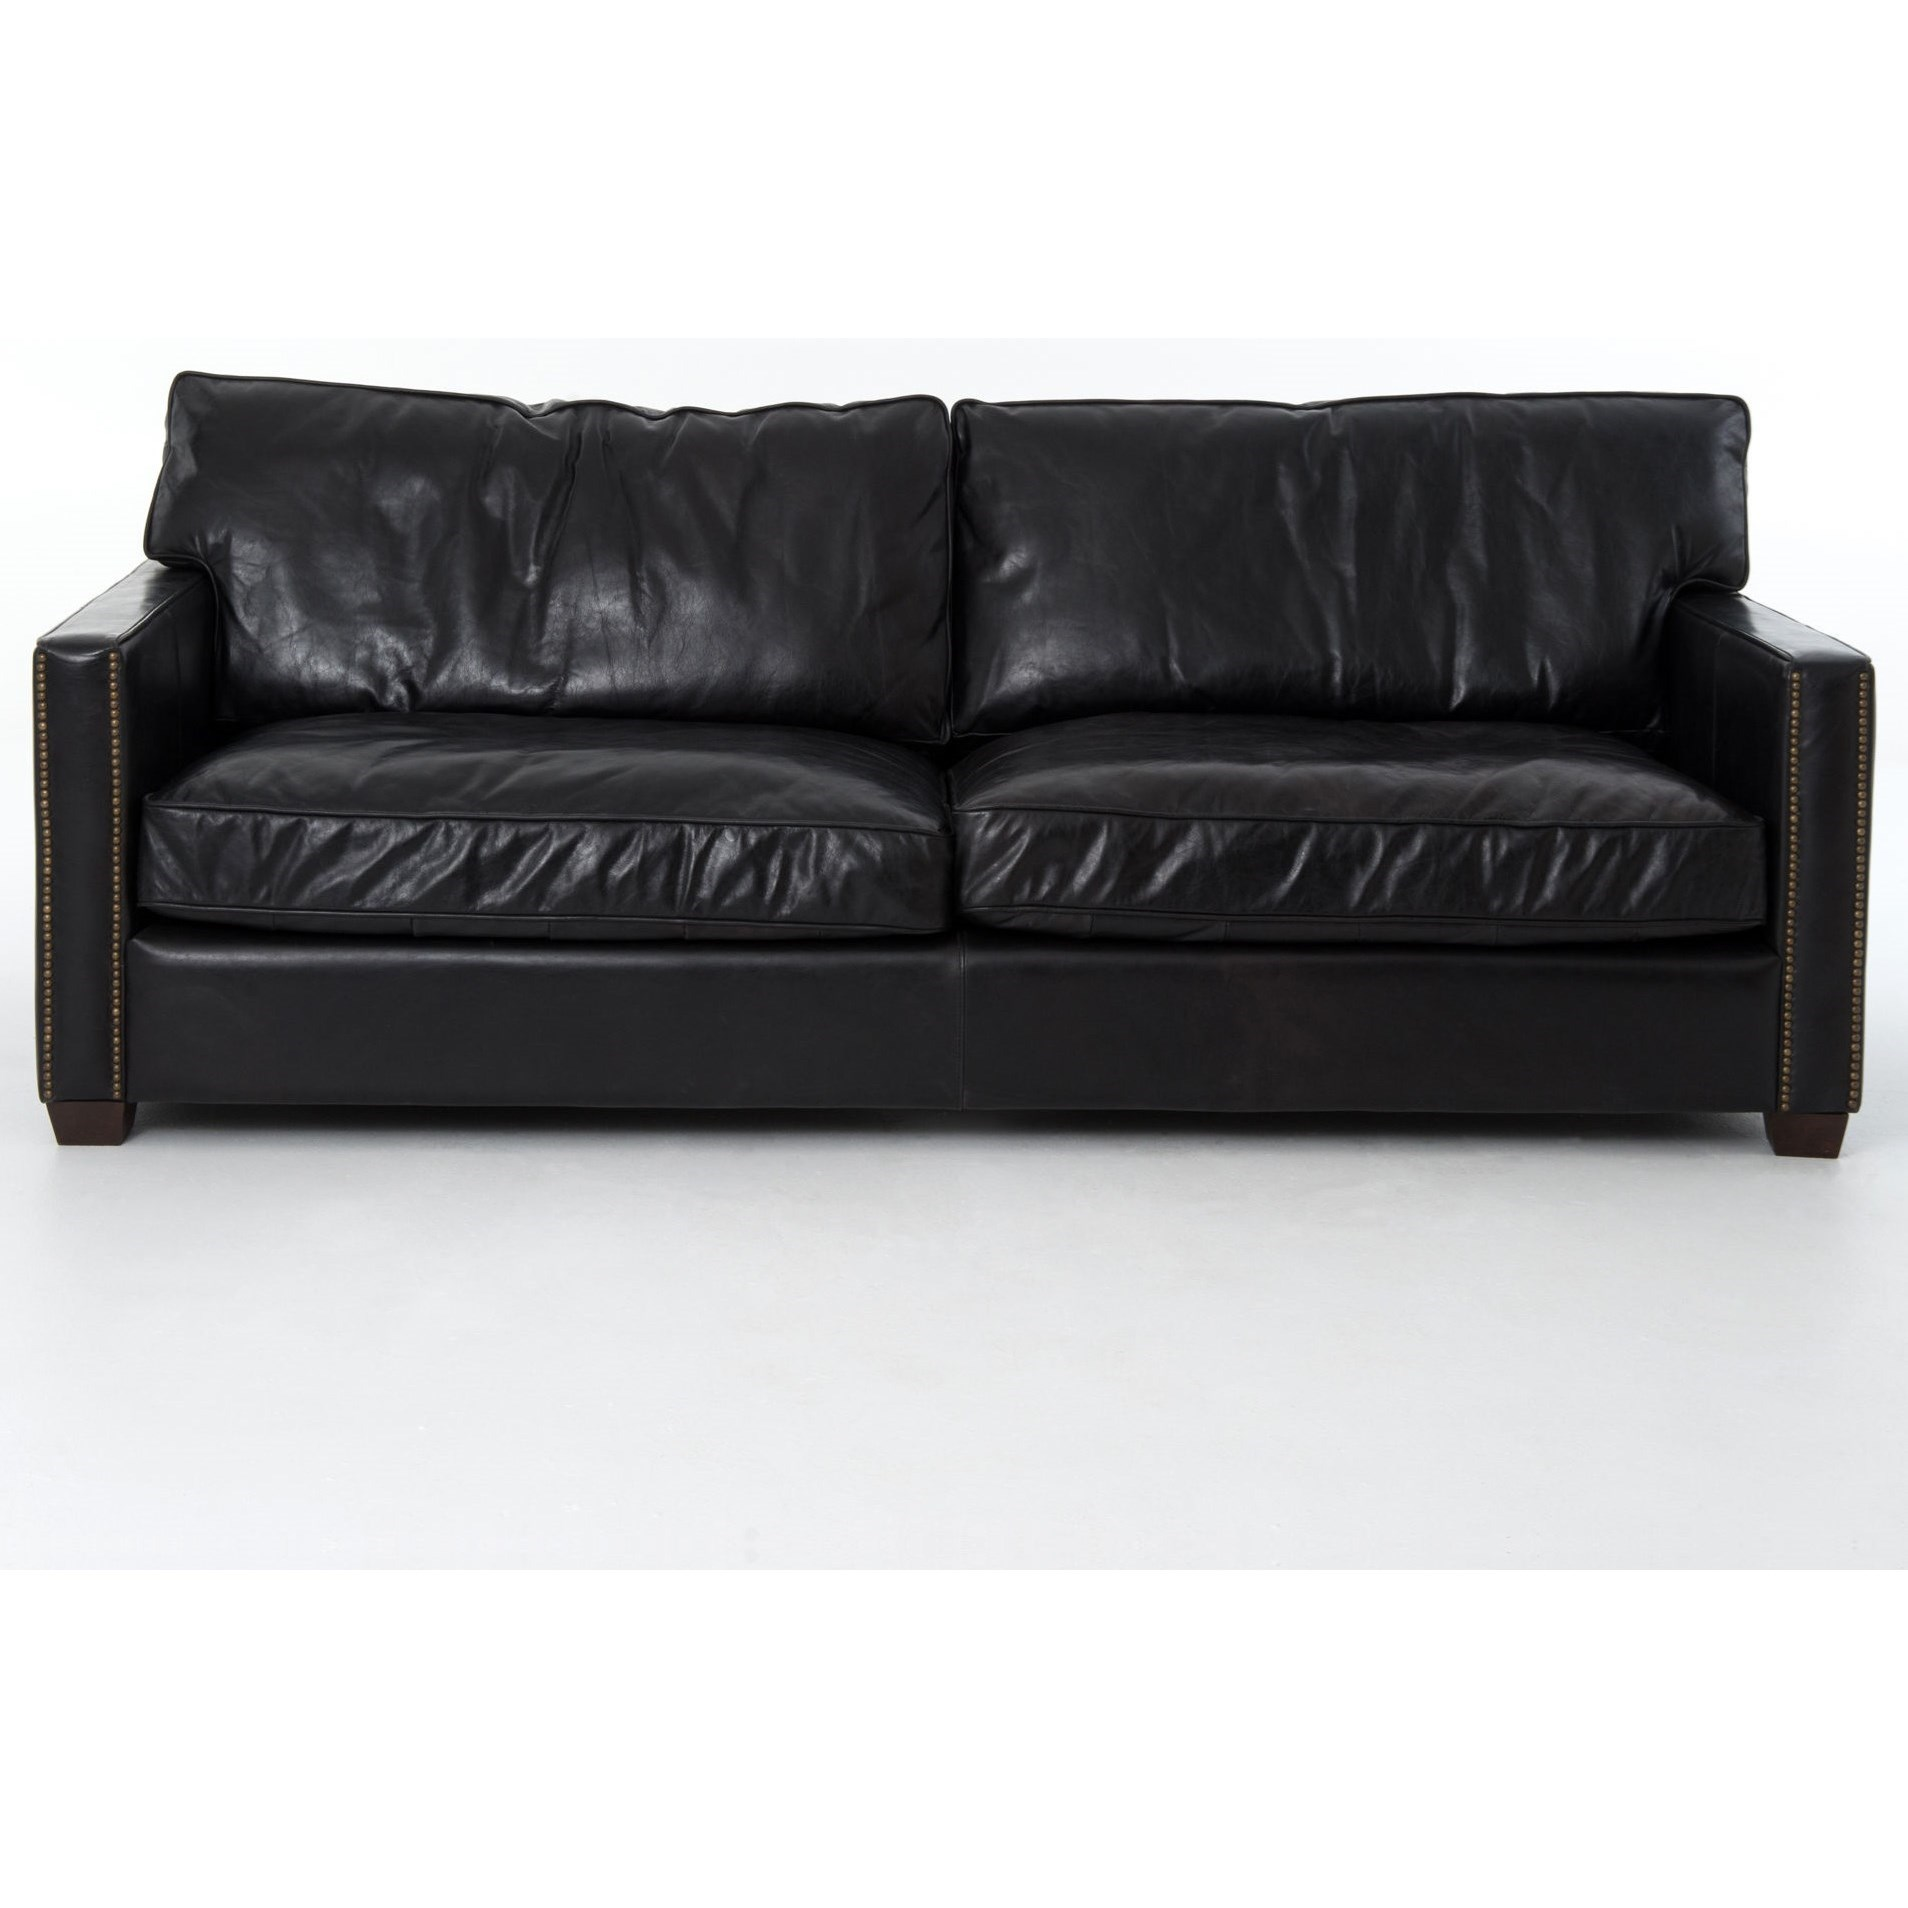 Larkin 88 Sofa With Old Saddle Black Leather By Four Hands Wolf